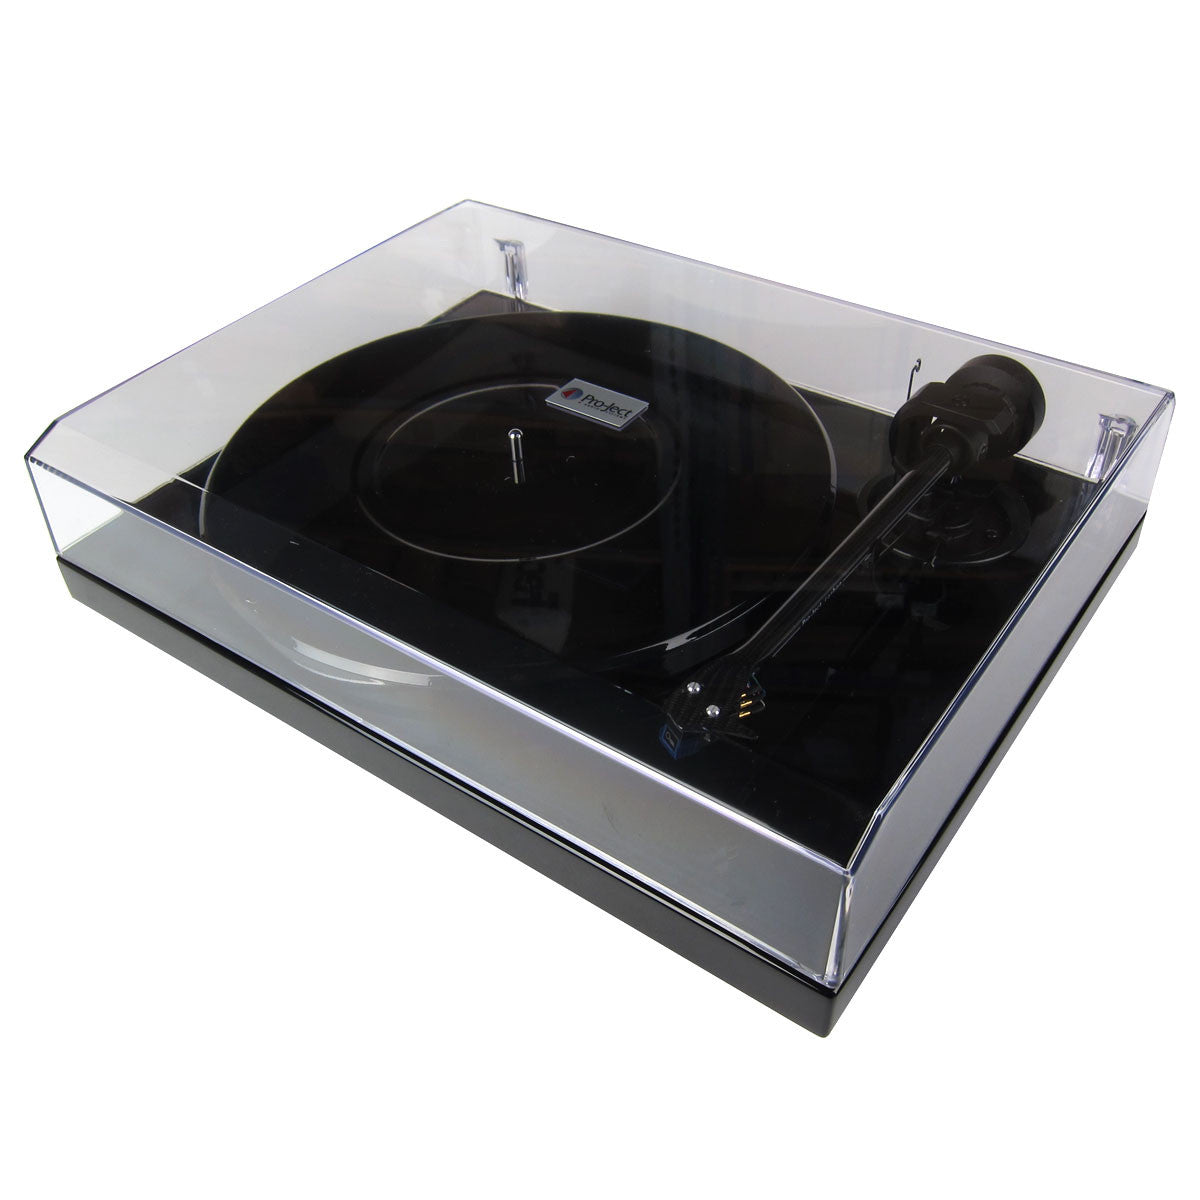 Pro-Ject: 1-Xpression Carbon Turntable / Oyster Cartridge - Piano Black dust cover closed